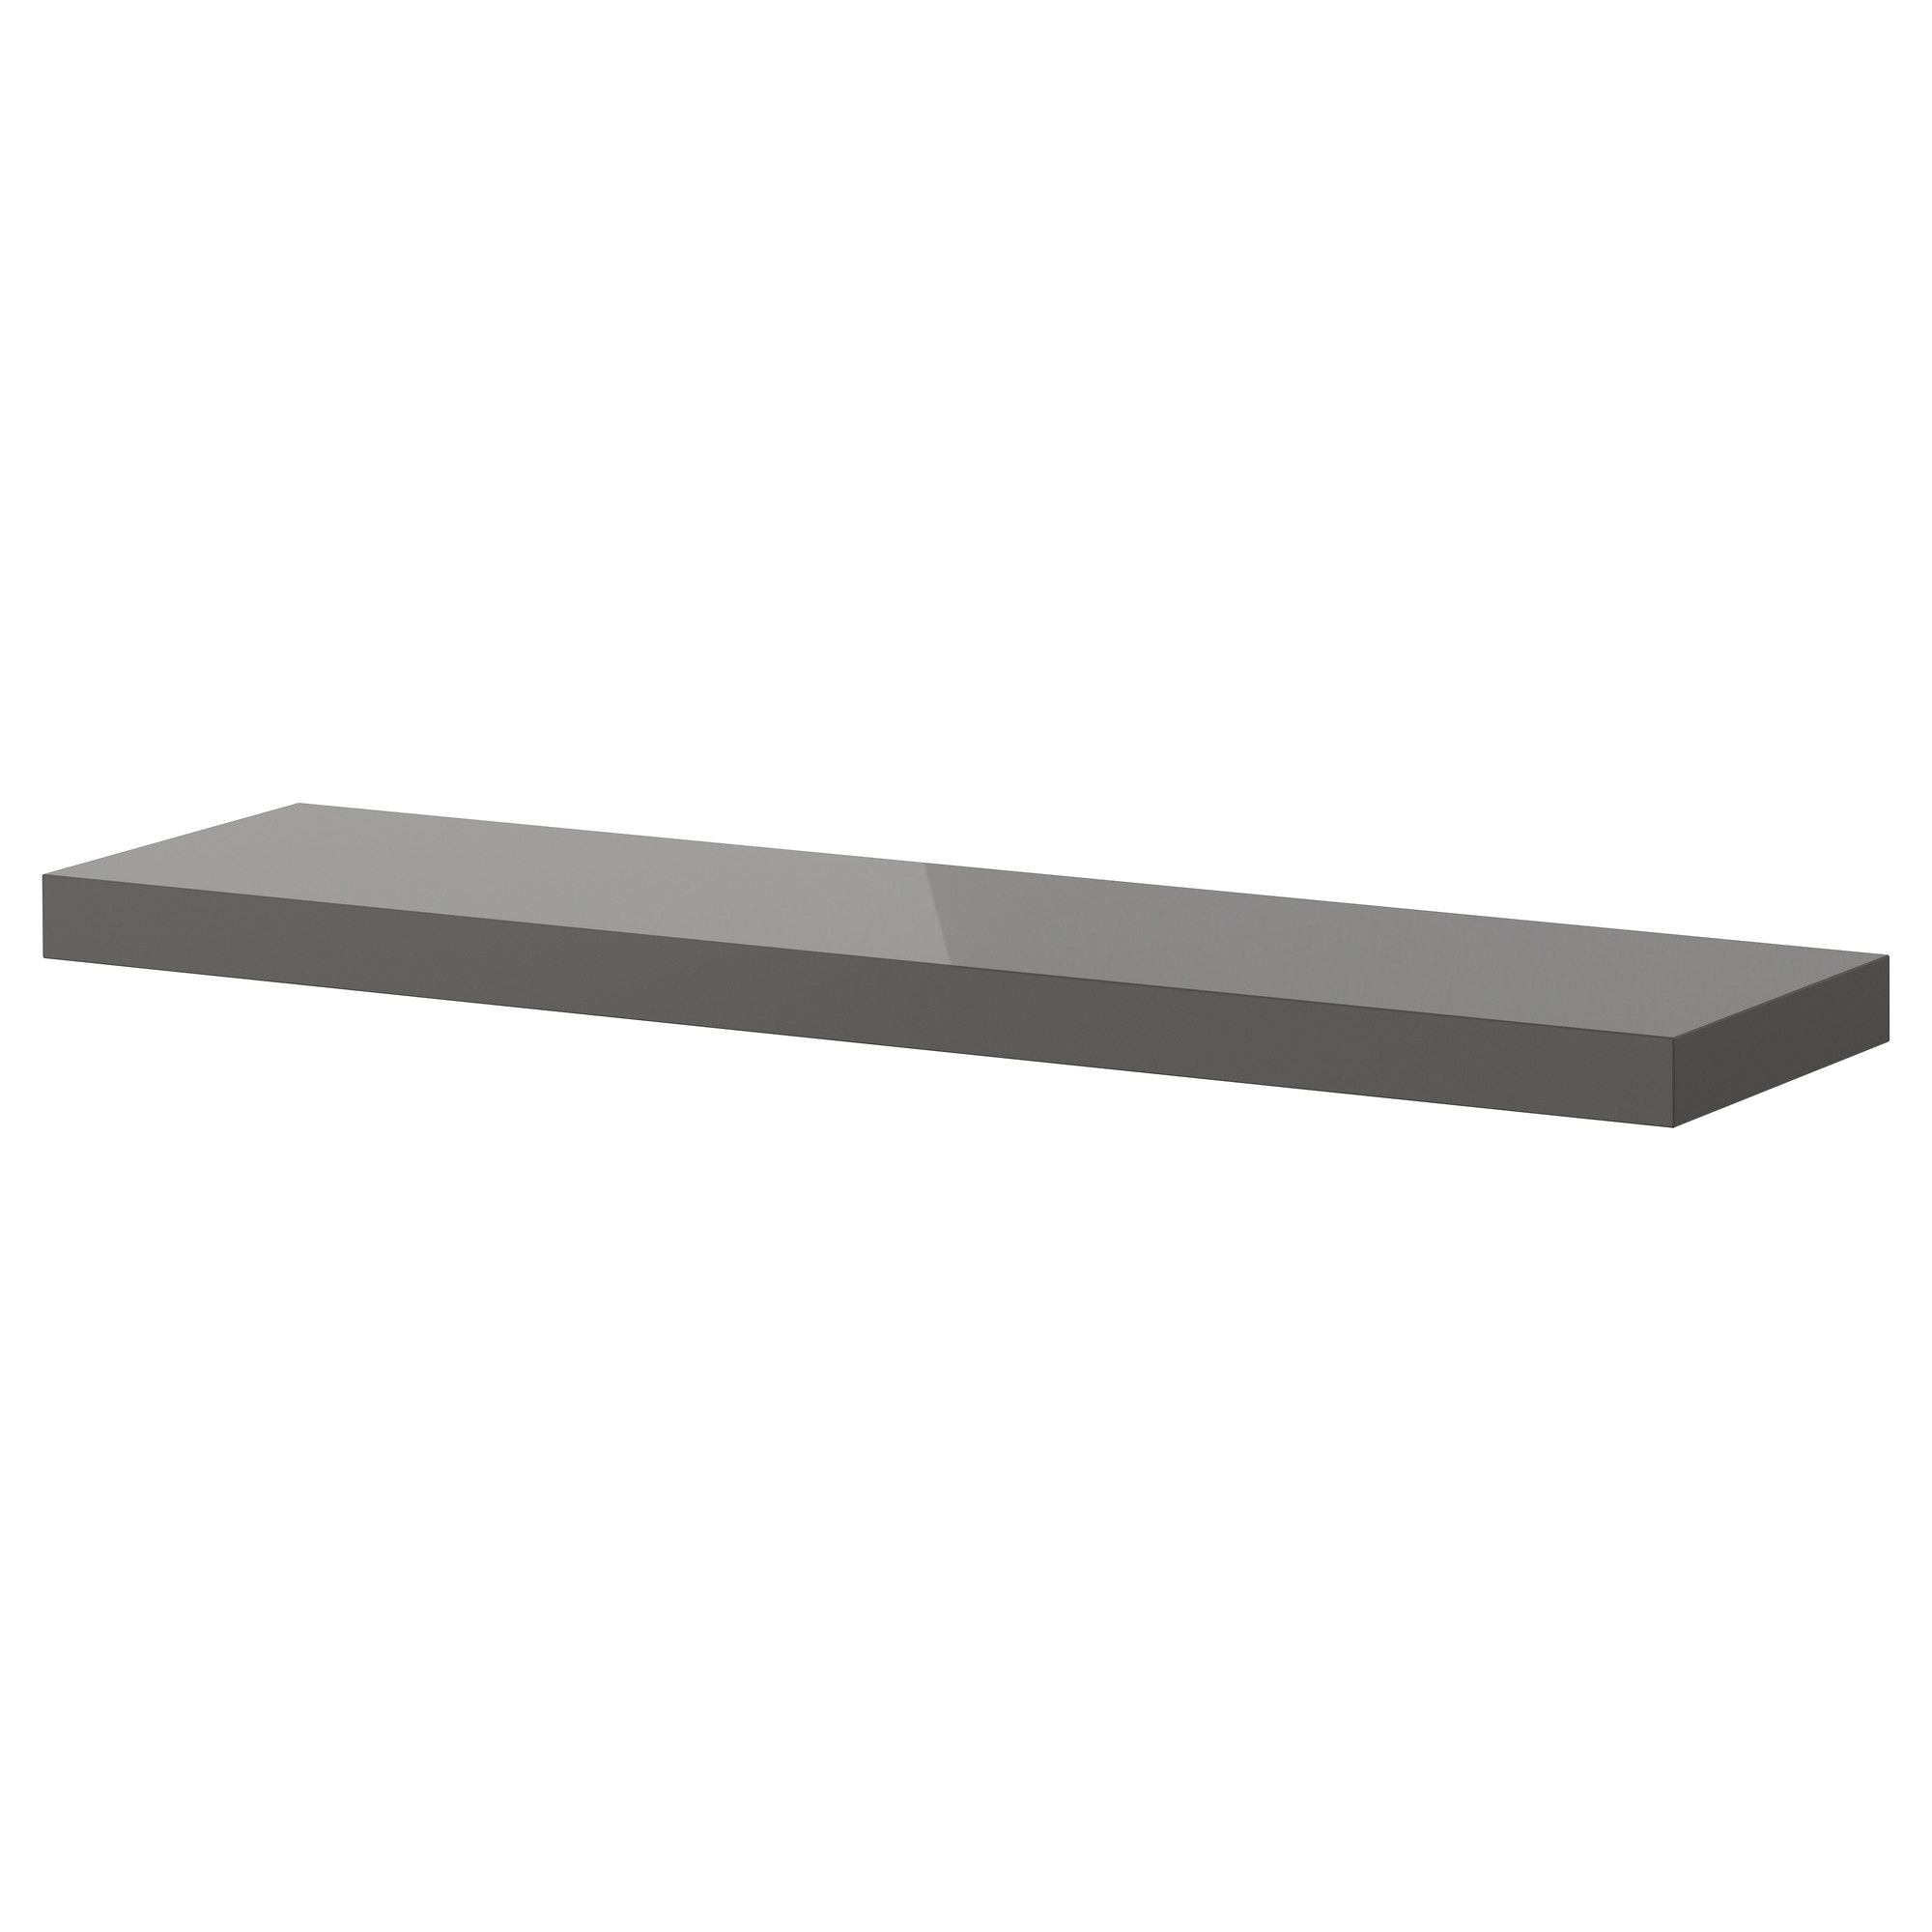 lack wall shelf high gloss gray ikea home floating shelves grey kitchen storage dishes ture ledge diy drawer bookcase sizes average length fireplace mantel glass hinges side table